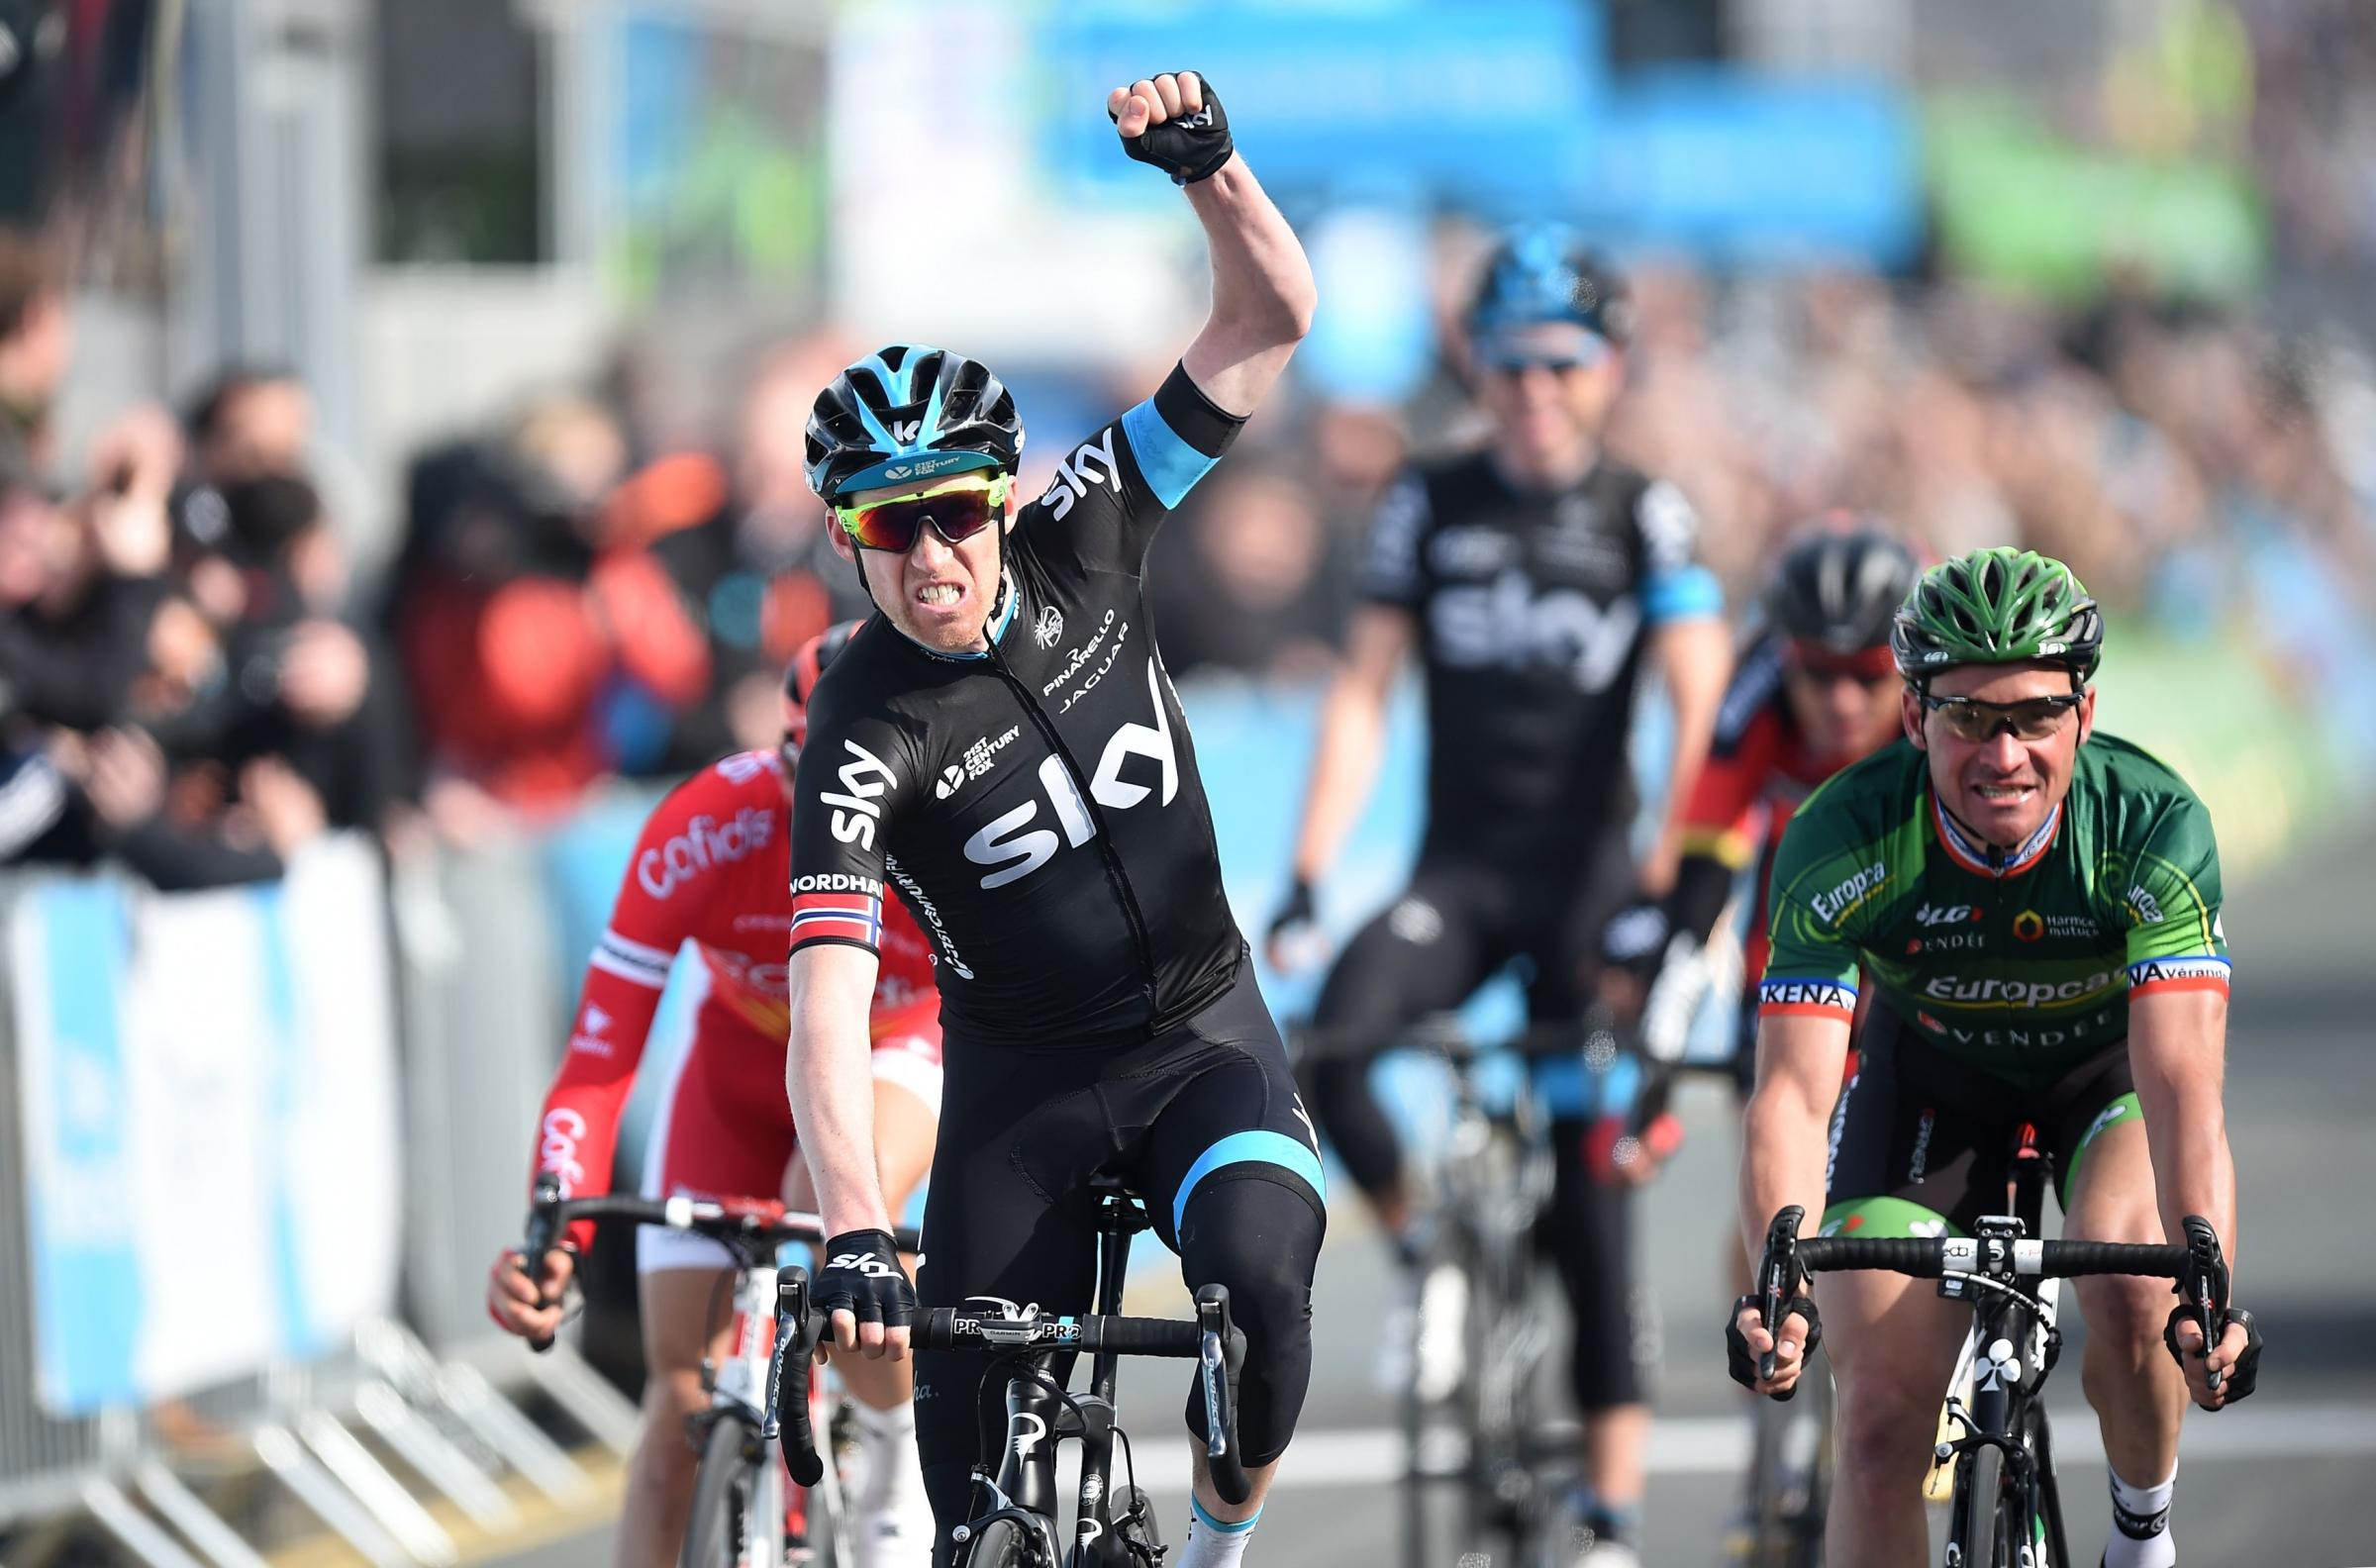 Norwegian Lars Petter Nordhaug wins stage one of the Tour de Yorkshire